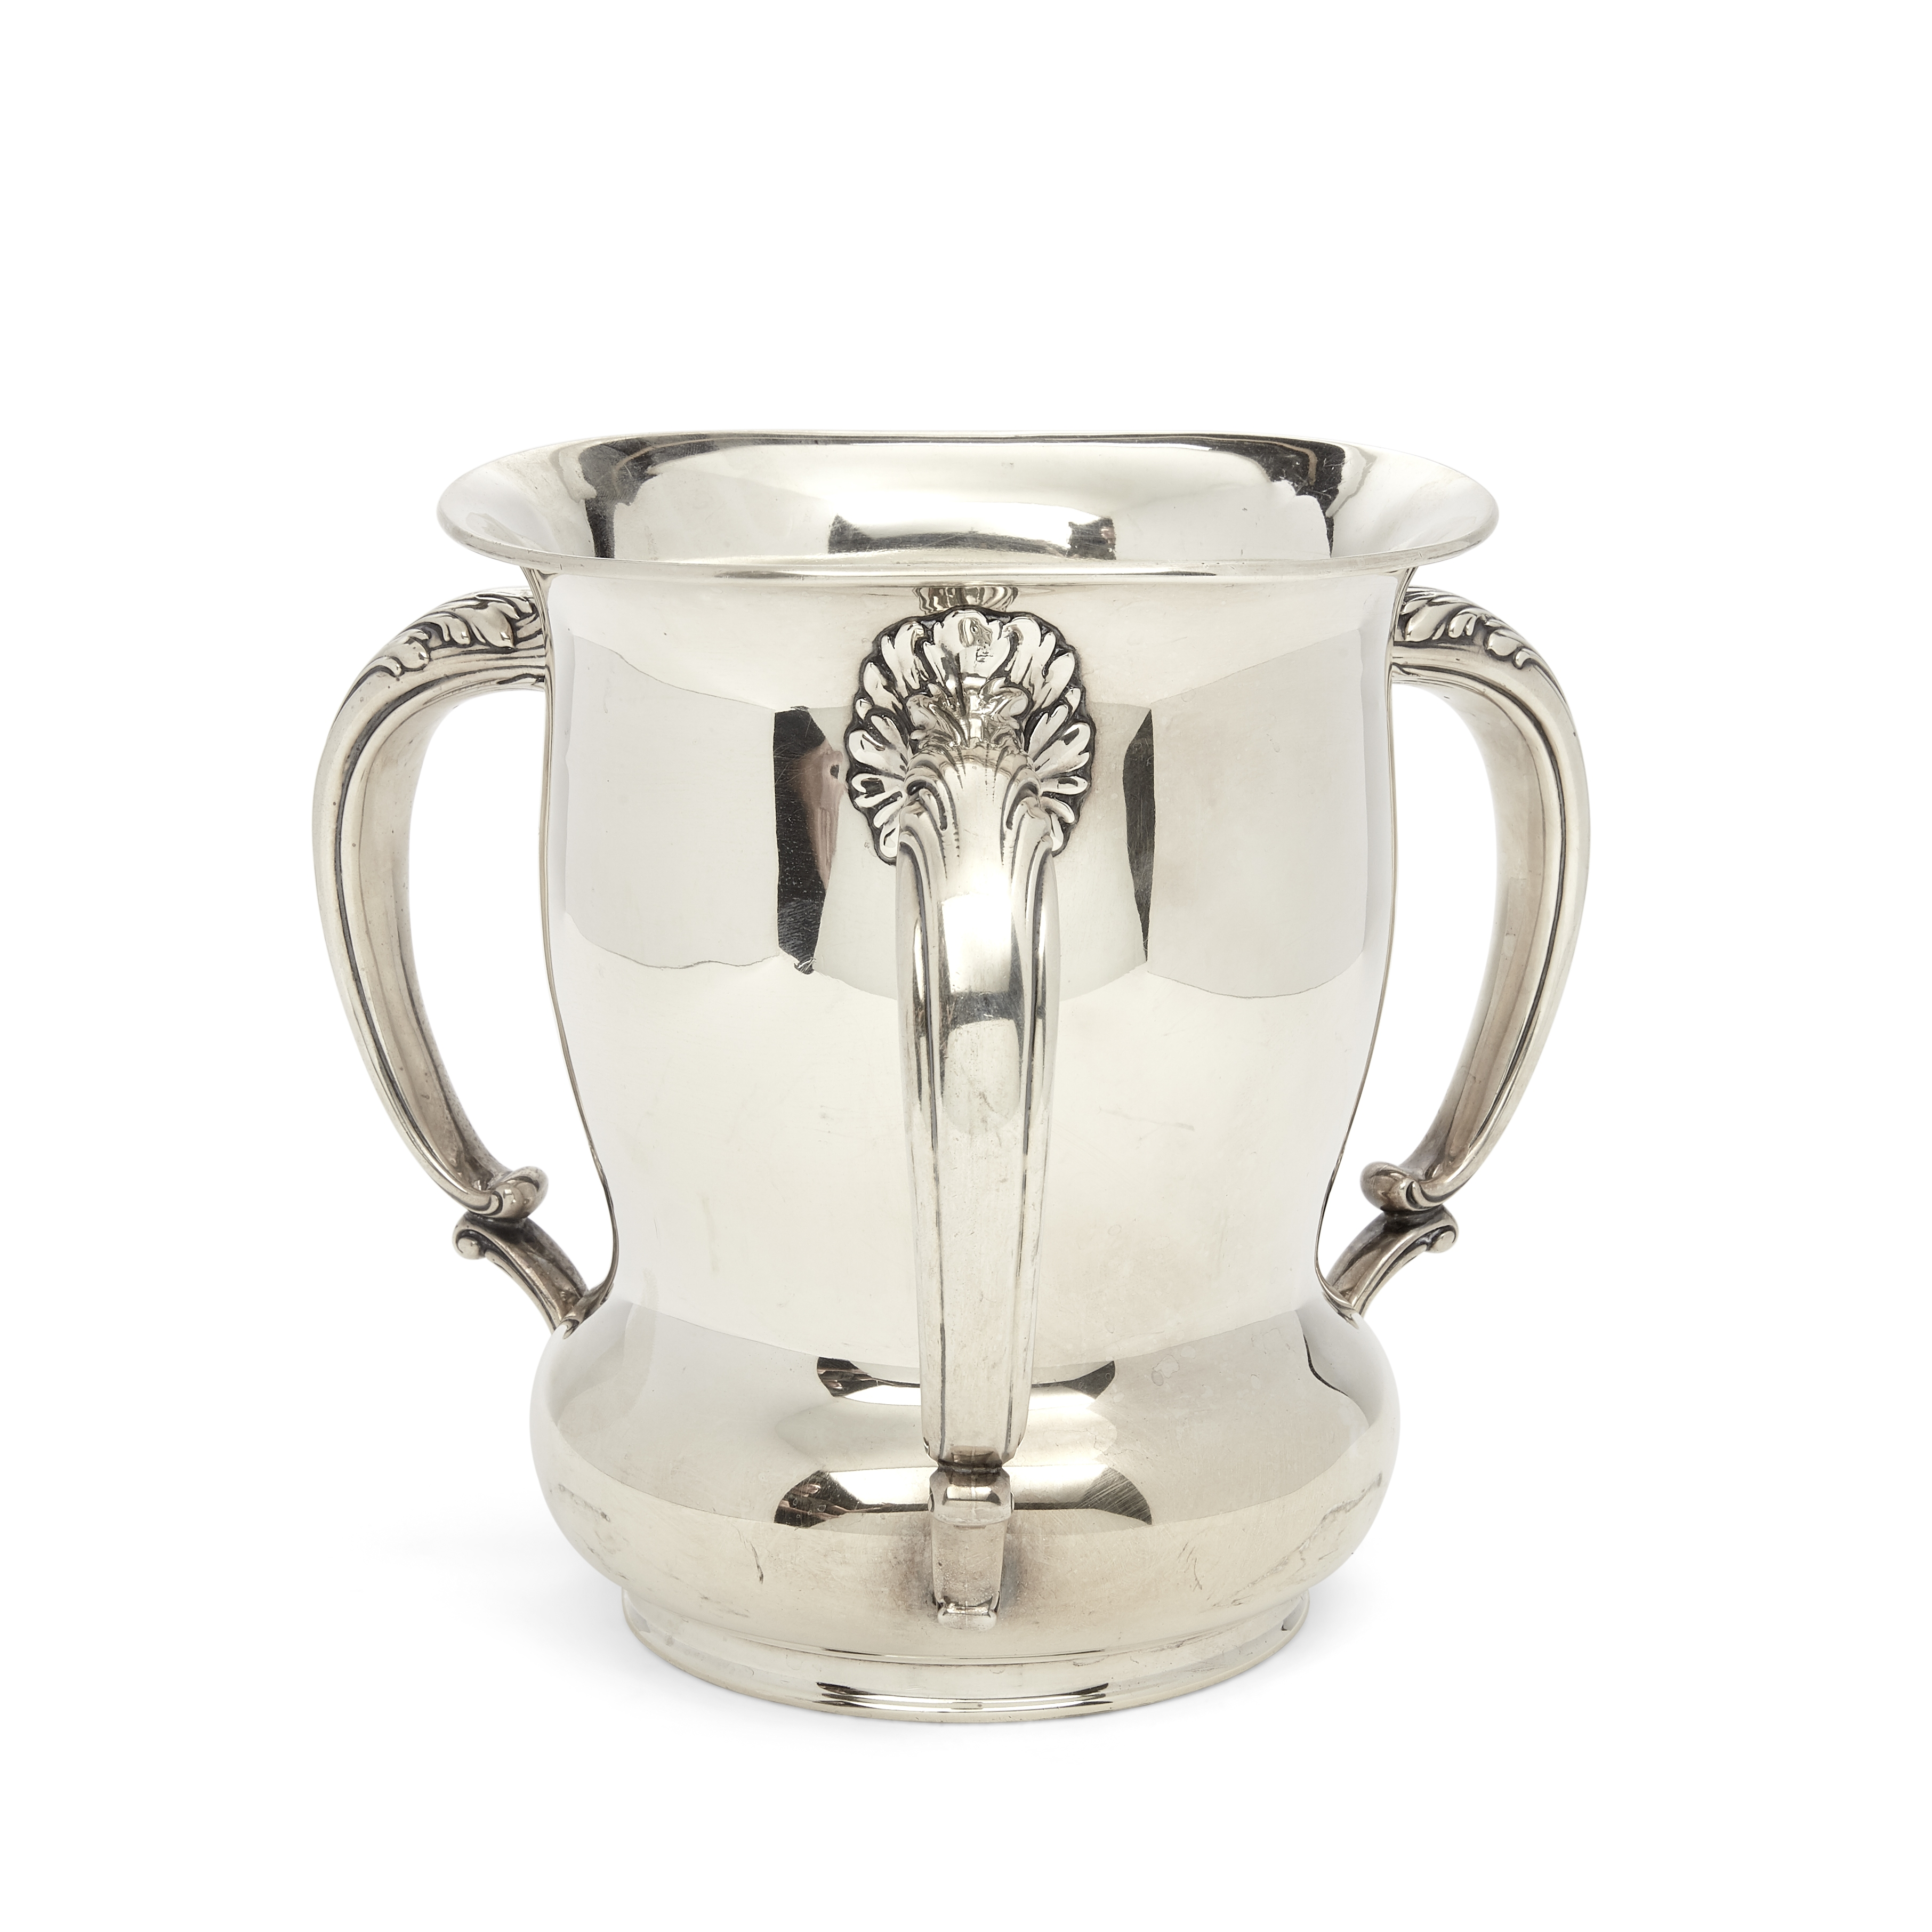 An American sterling silver three-handled loving cup by Gorham Mfg. Co., Providence, RI, 20th cen...